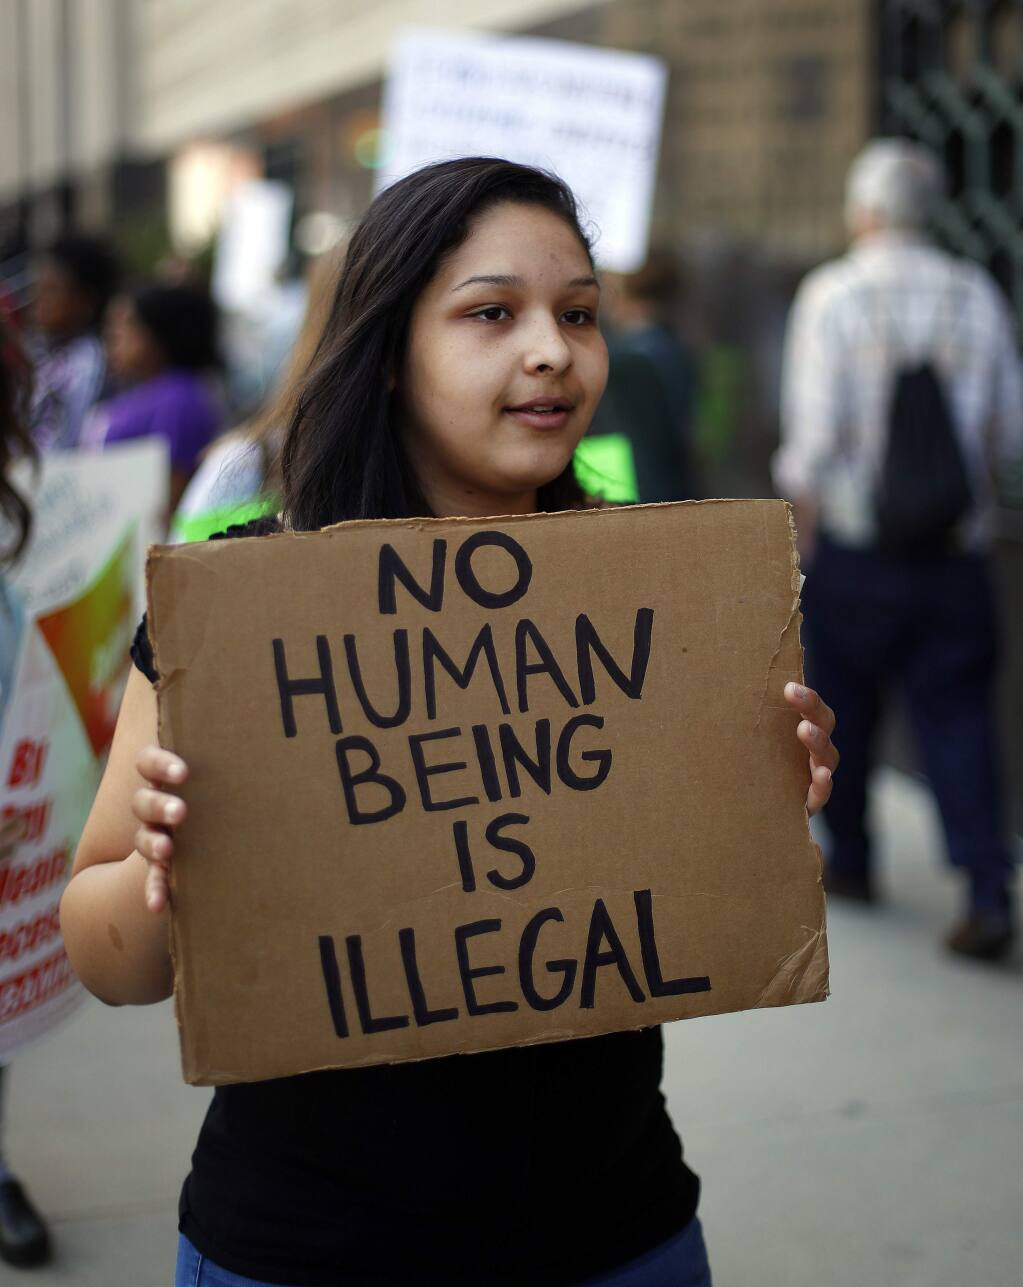 FILE - In this May 16, 2017 file photo, Alex Linders, a junior at Pioneer High School in Ann Arbor, Mich., carries a sign during a rally outside a federal courthouse in Detroit. For years, immigrants have checked in regularly with federal deportation agents to show they've been following the country's laws even though they have been ordered to leave. Now, in cases spanning from Michigan to California, many of those who have exhausted their legal options are being told their time here is up. (AP Photo/Paul Sancya, File)